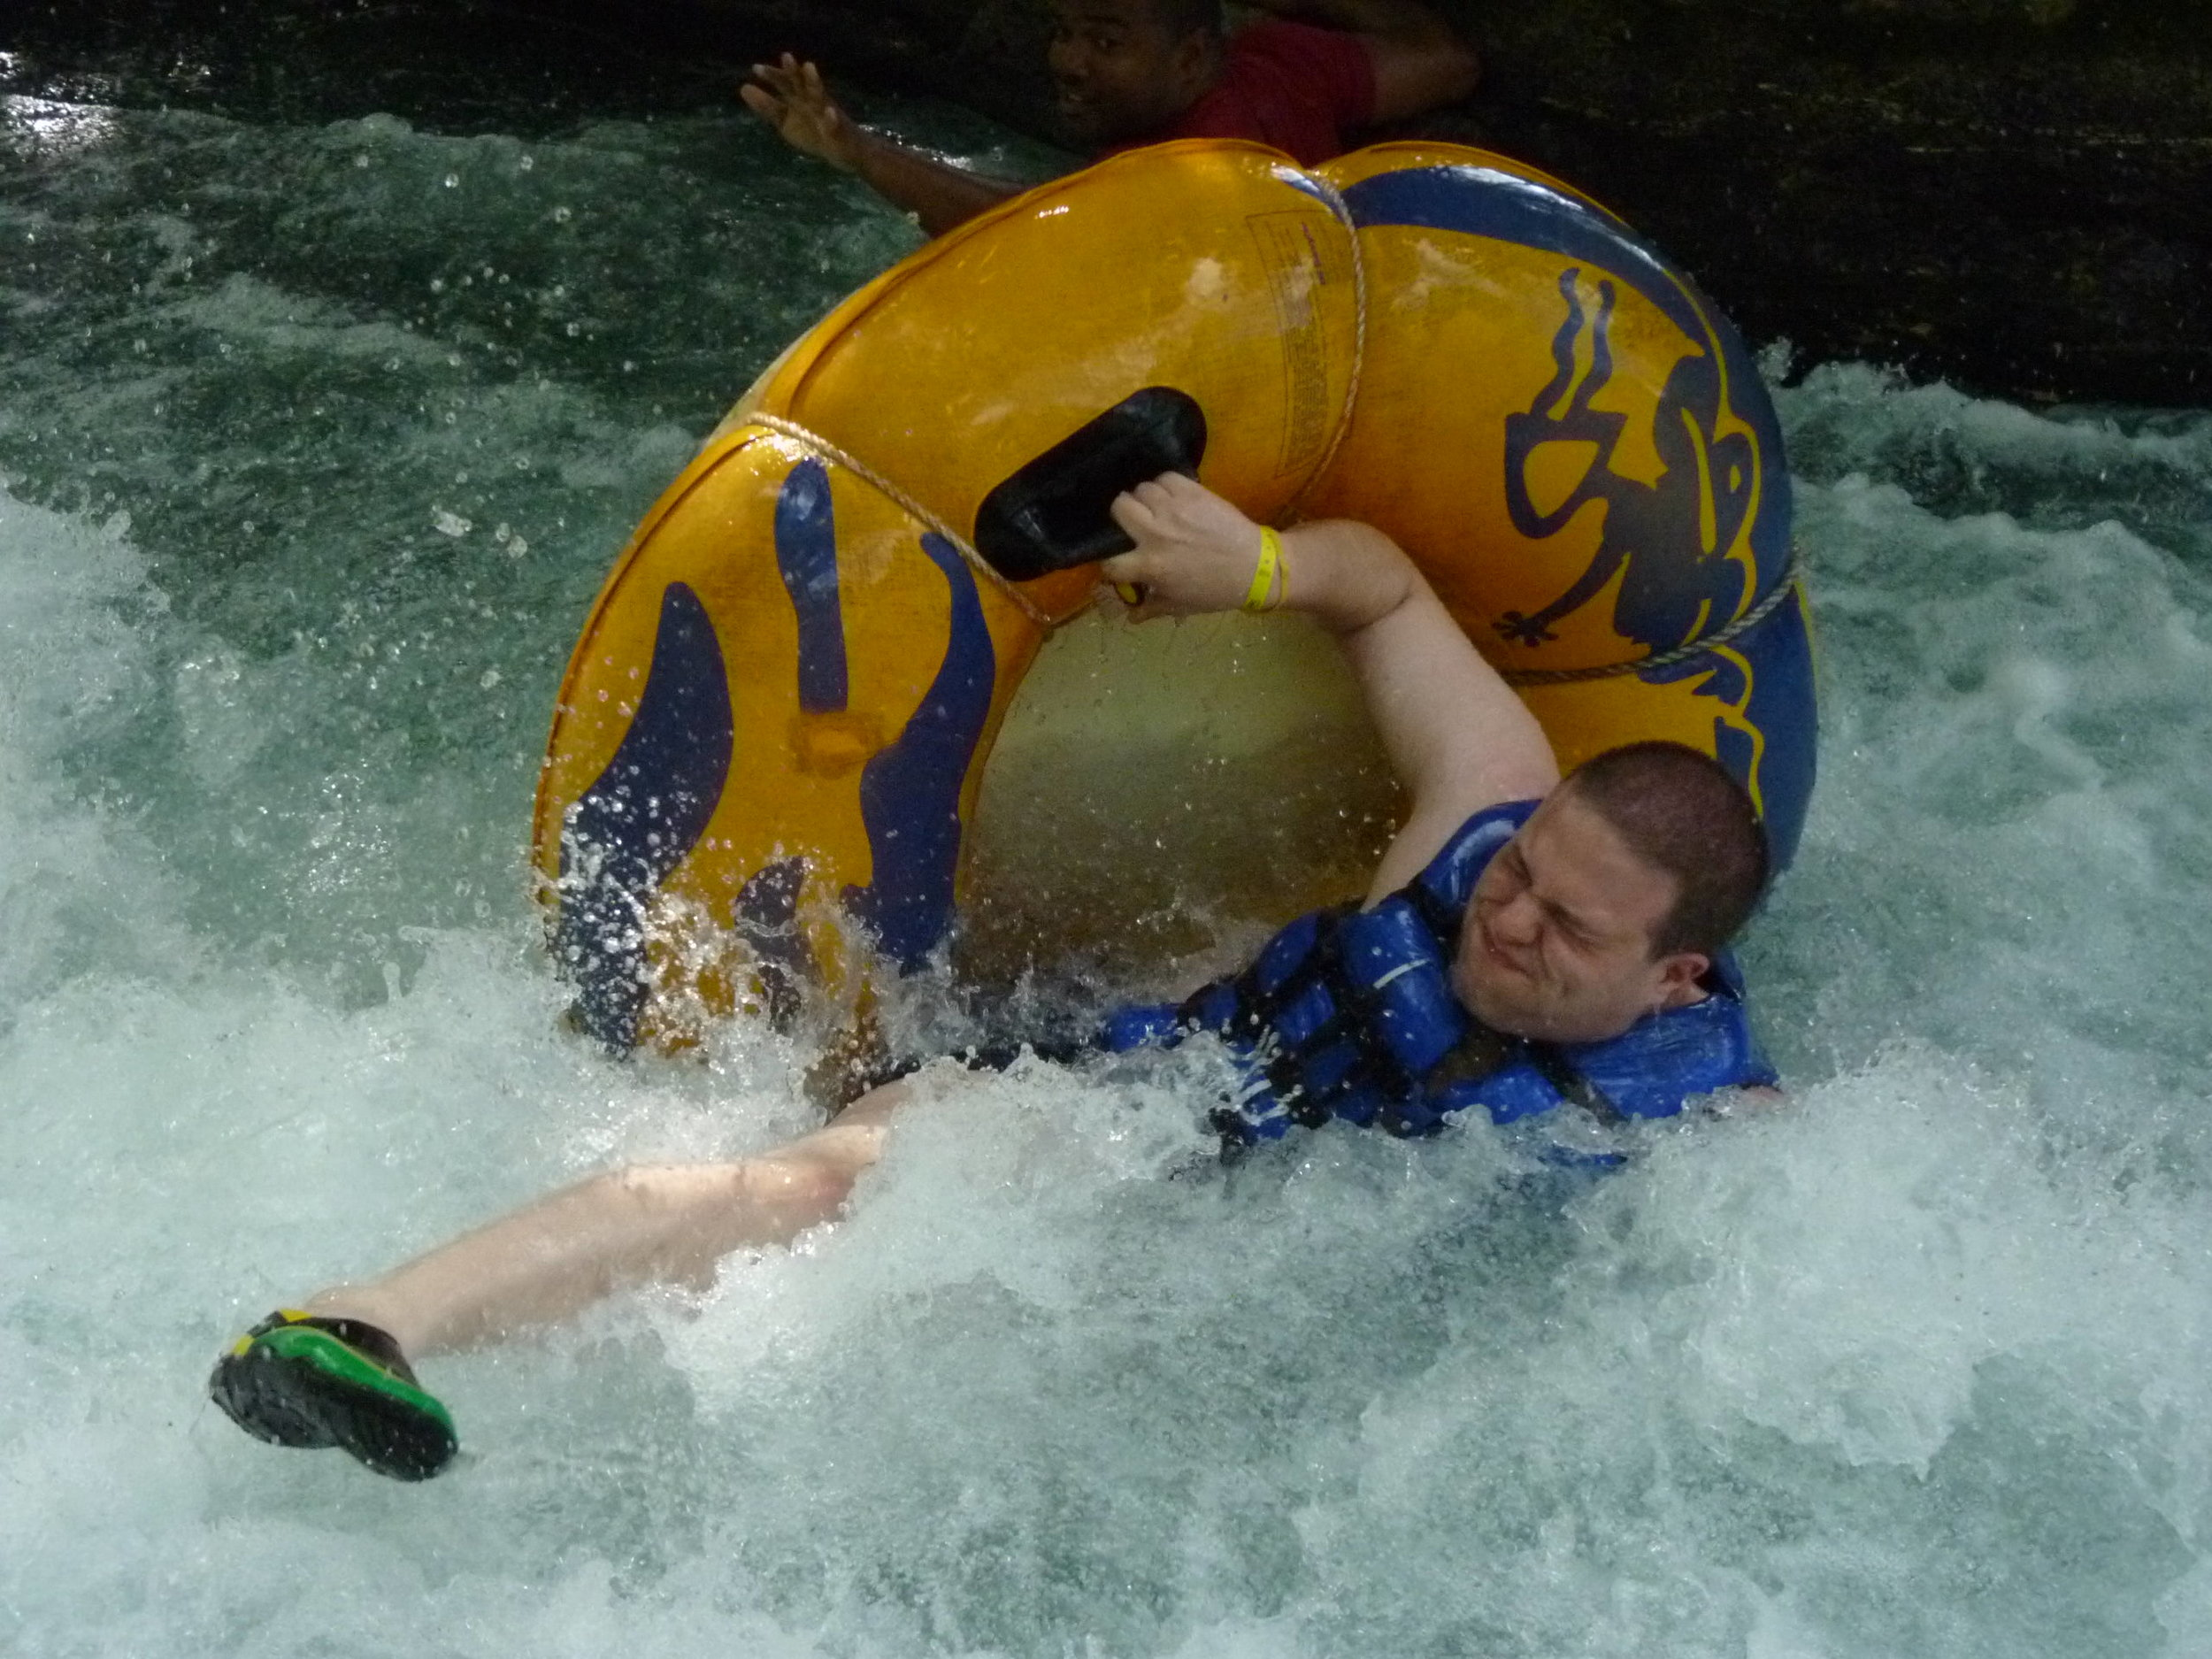 Water tubing on Steve.JPG